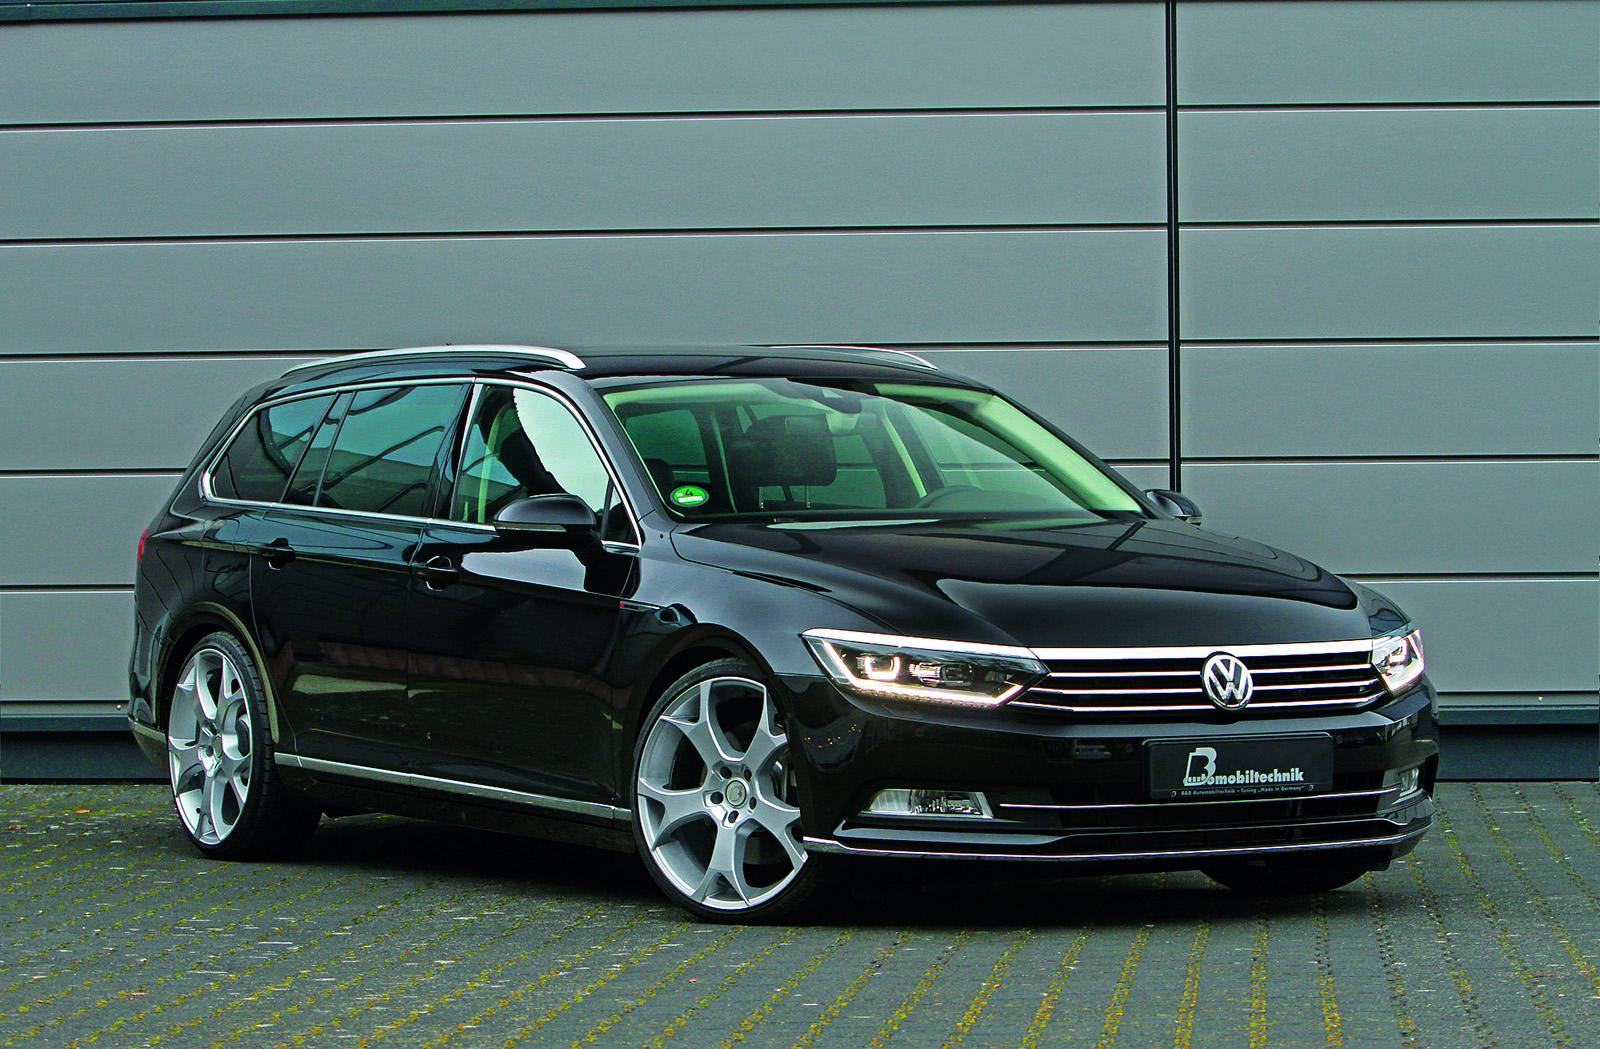 volkswagen tuning 2015 passat variant tuned by b b automobiltechnik. Black Bedroom Furniture Sets. Home Design Ideas